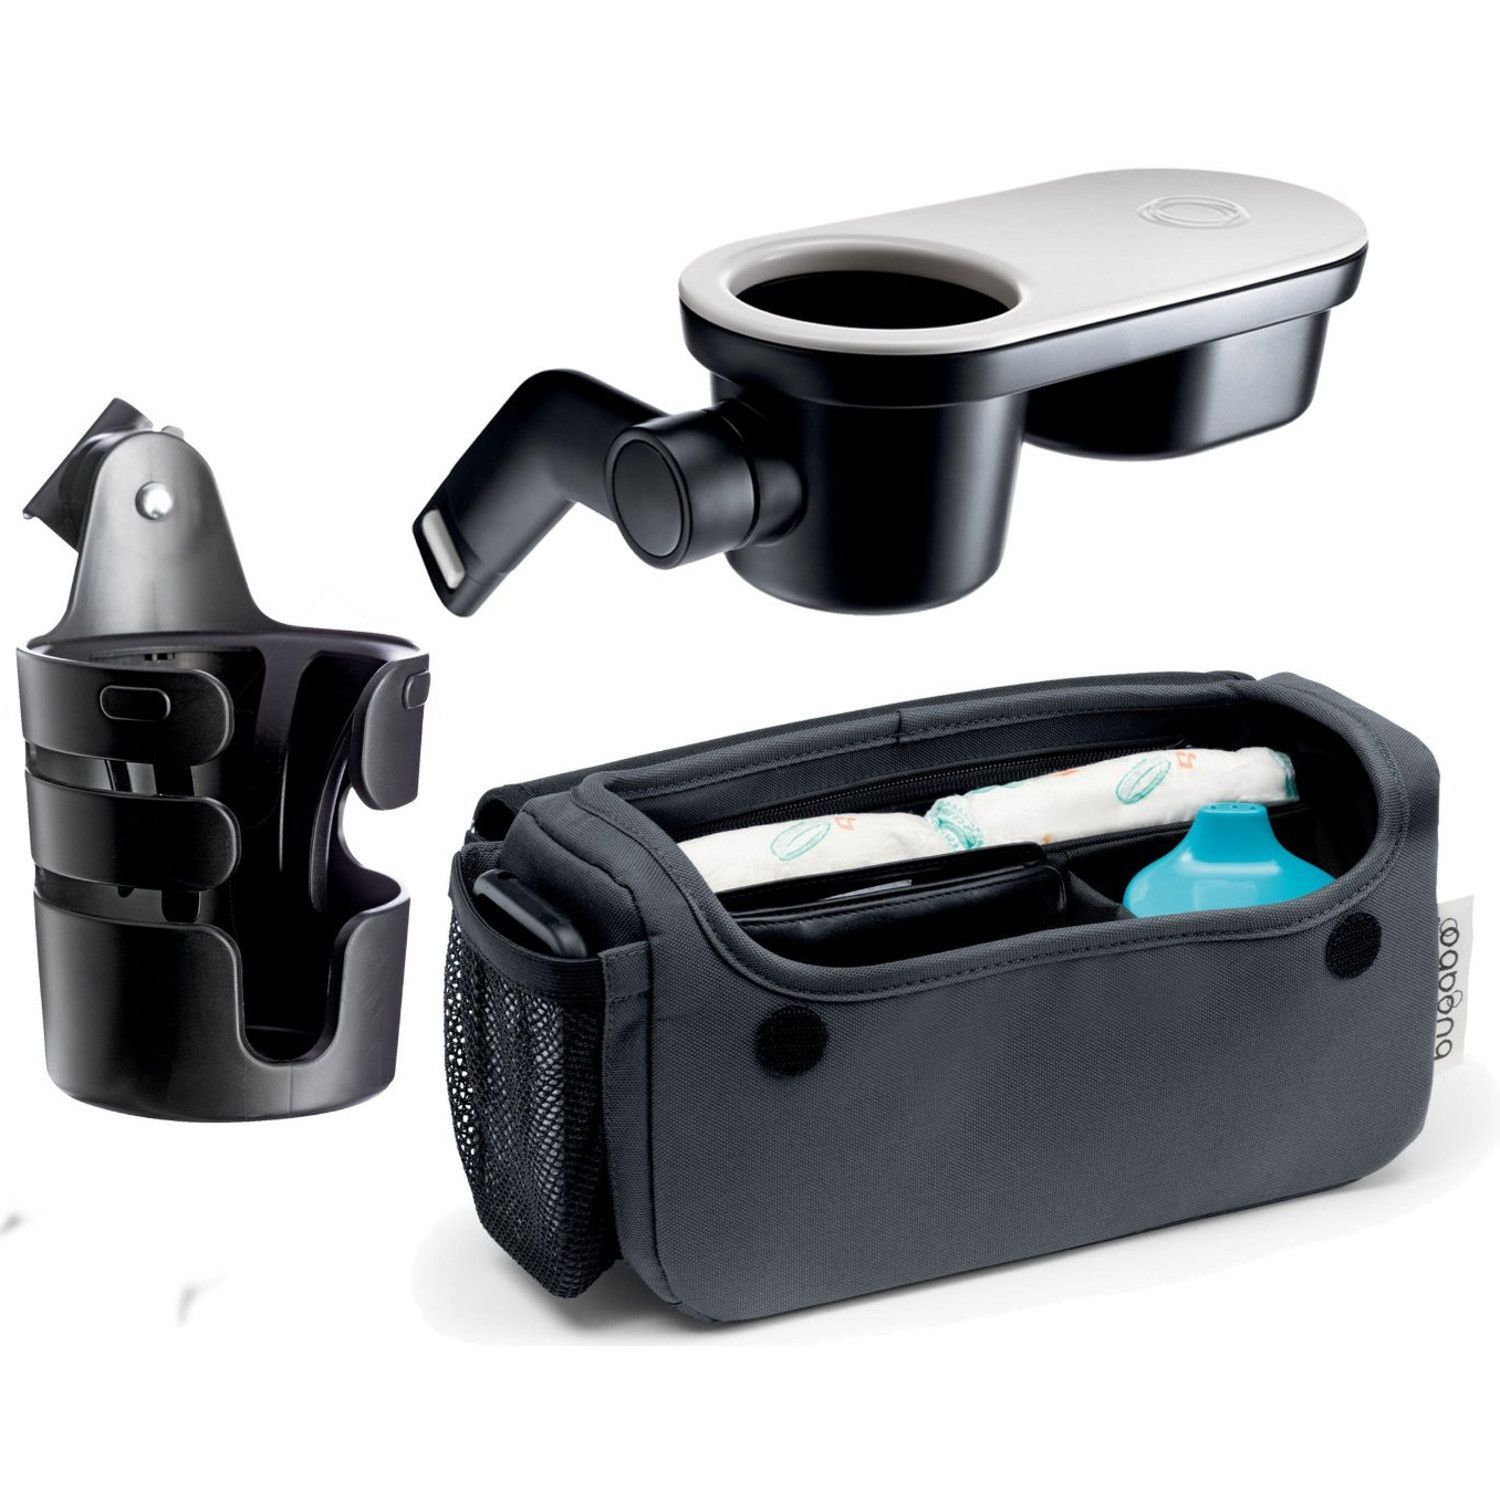 Bugaboo Cup Holder, Organizer and Snack Tray (With images